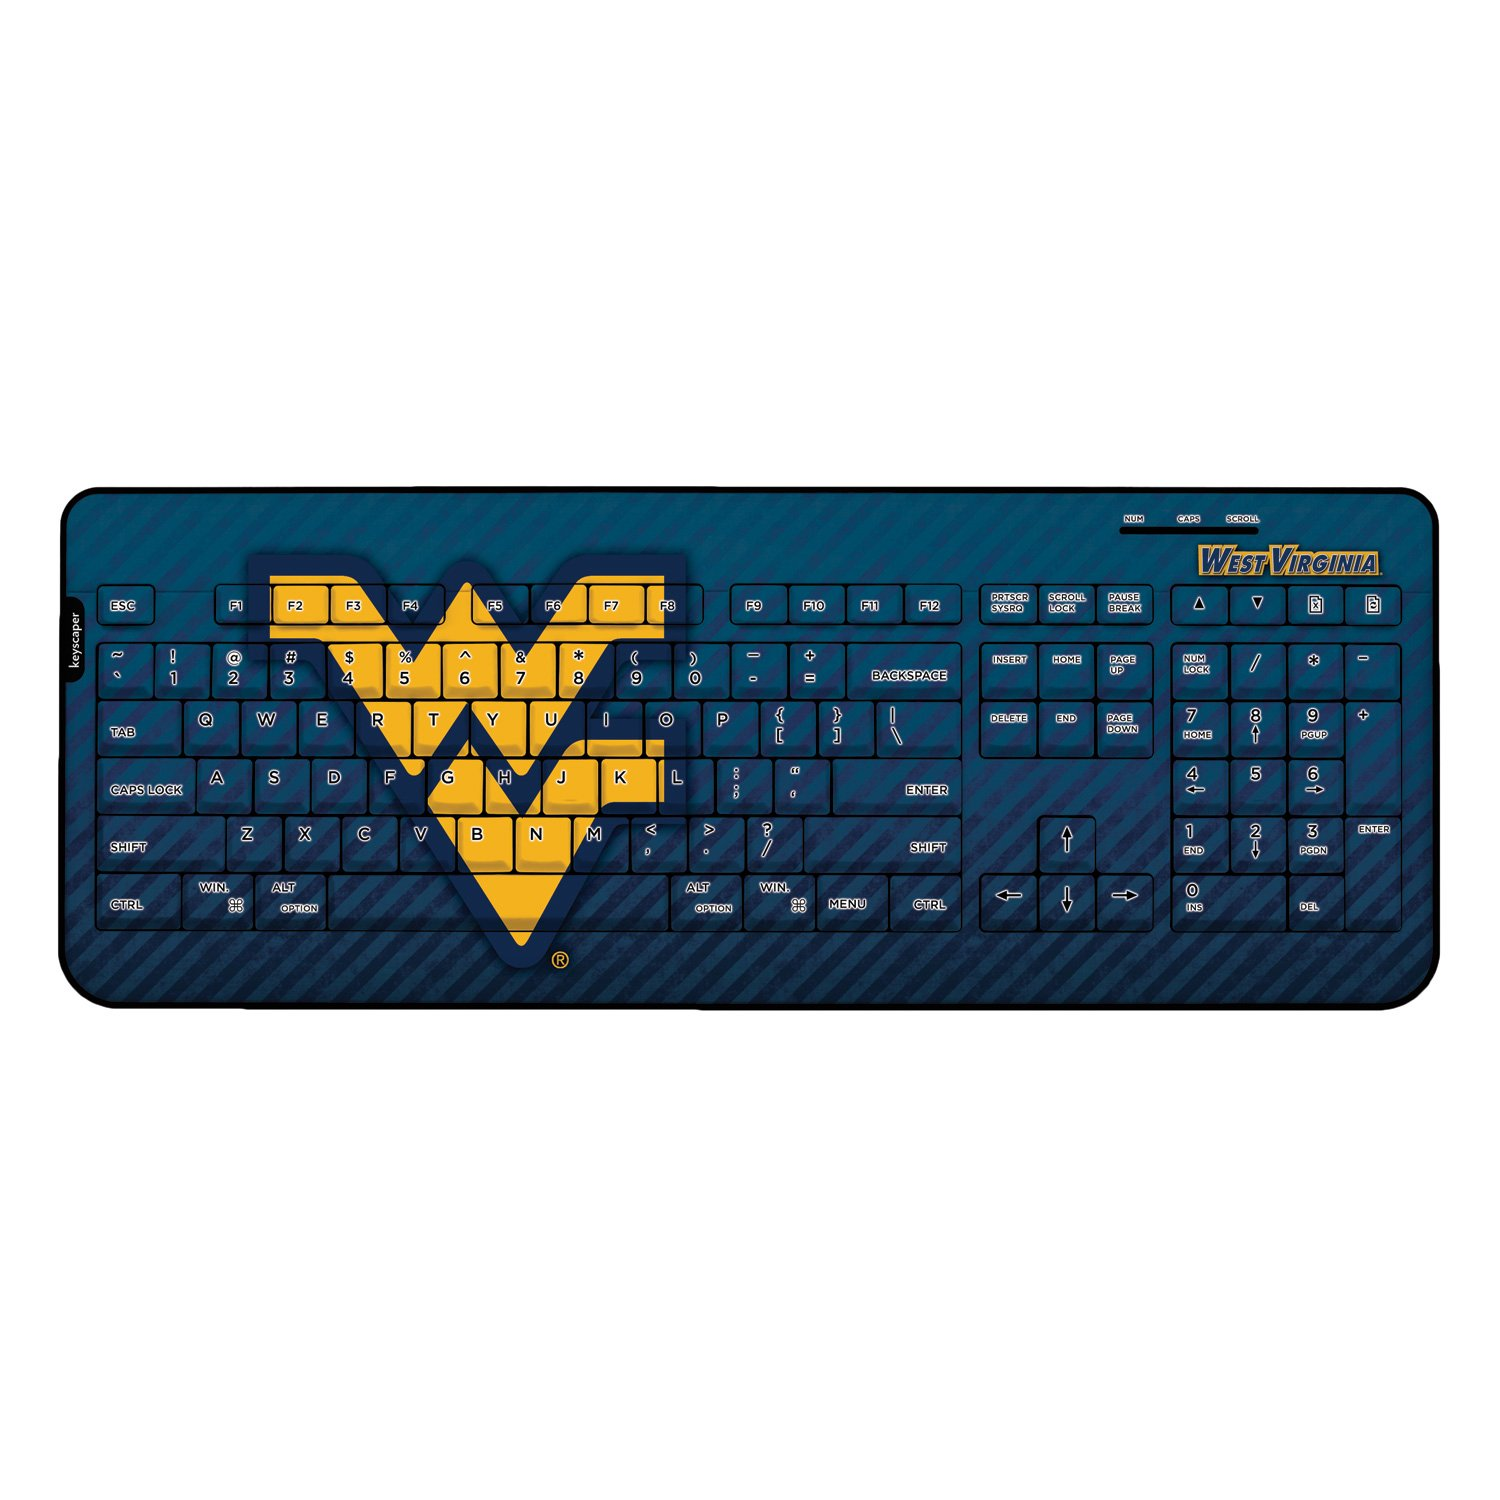 West Virginia Mountaineers Keyscaper Wired Keyboard Licensed by the NCAA by Keyscaper